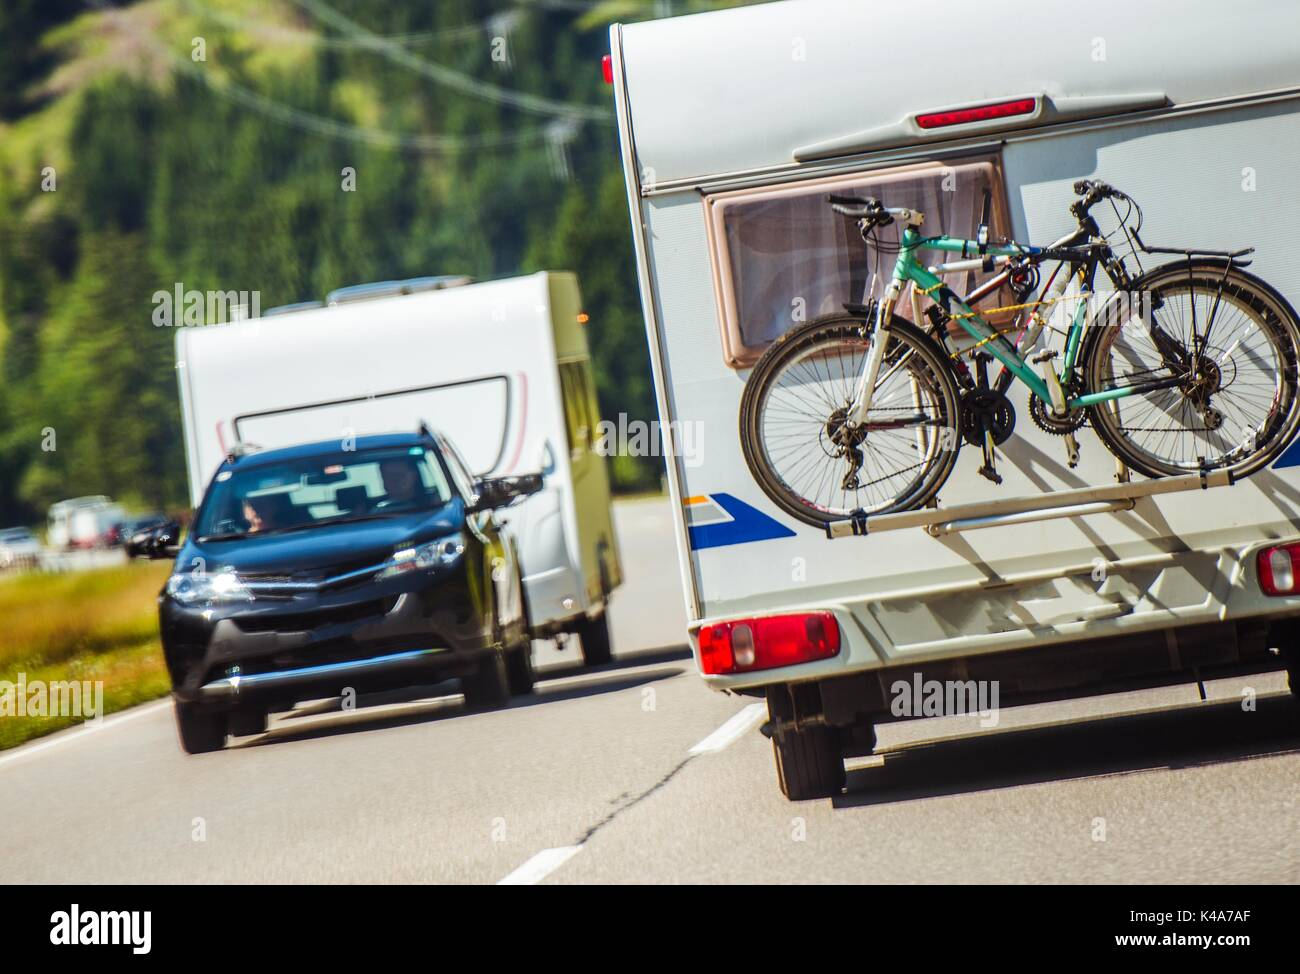 Campers Peak Season. Travel Trailers and Campers on the Road. Heavy Vacation Traffic. - Stock Image